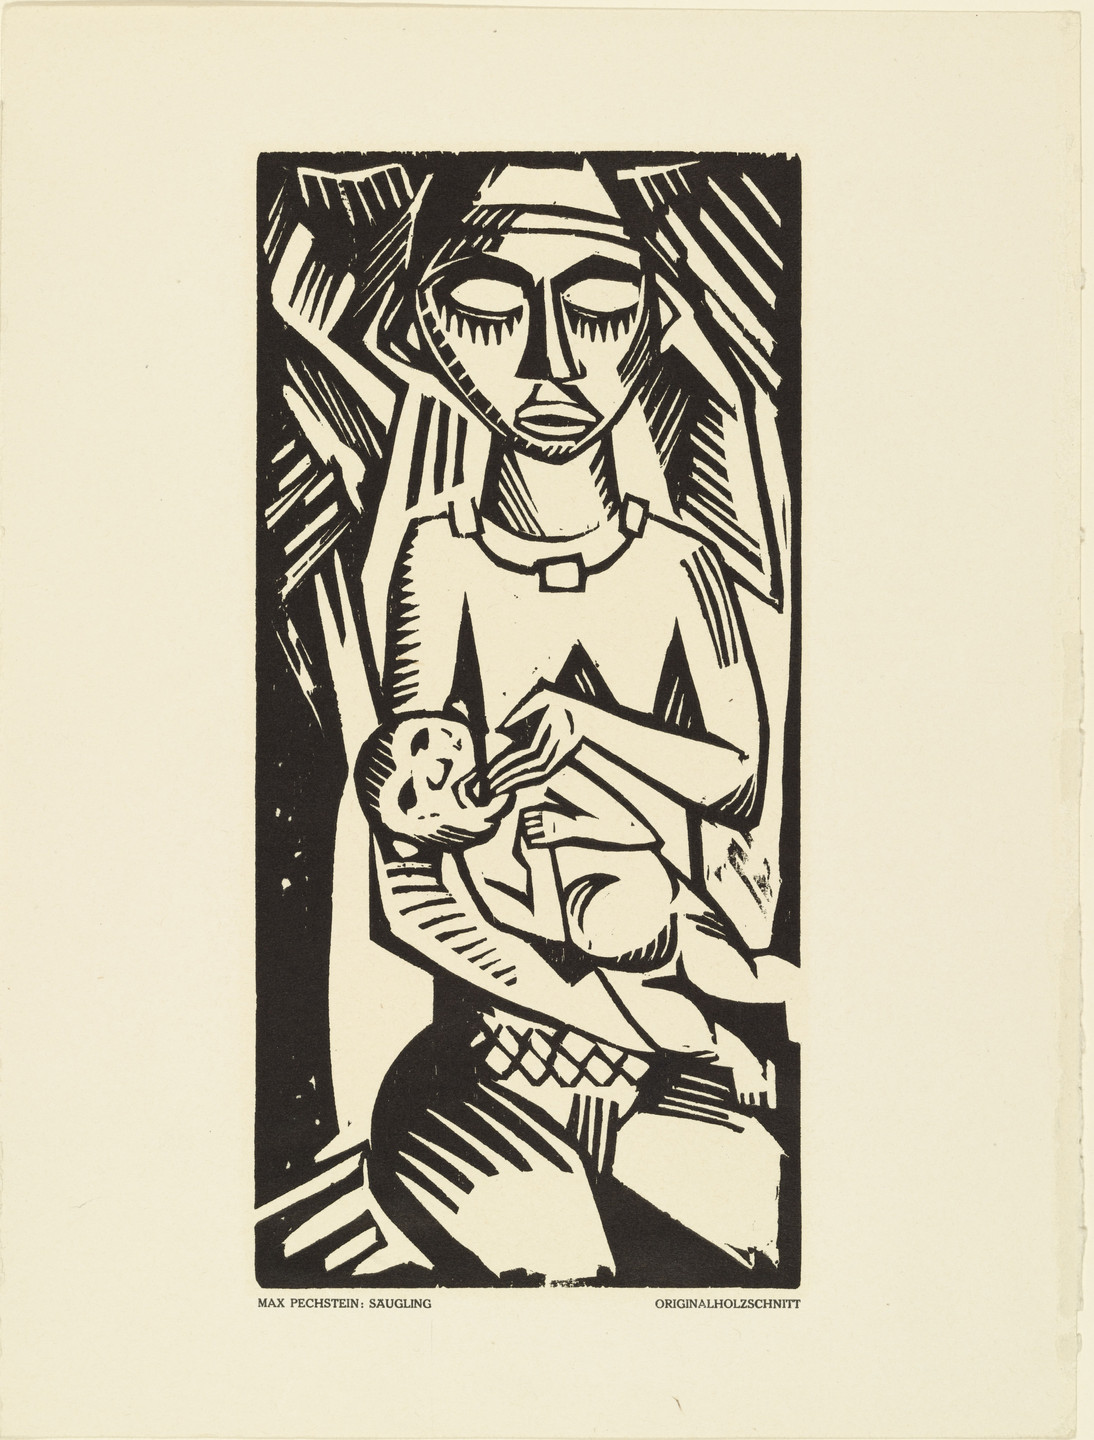 Max Pechstein. Infant (Säugling) (plate, preceding p. 161) from the periodical Das Kunstblatt, vol. 2, no. 6 (Jun 1918). 1918 (executed 1917)